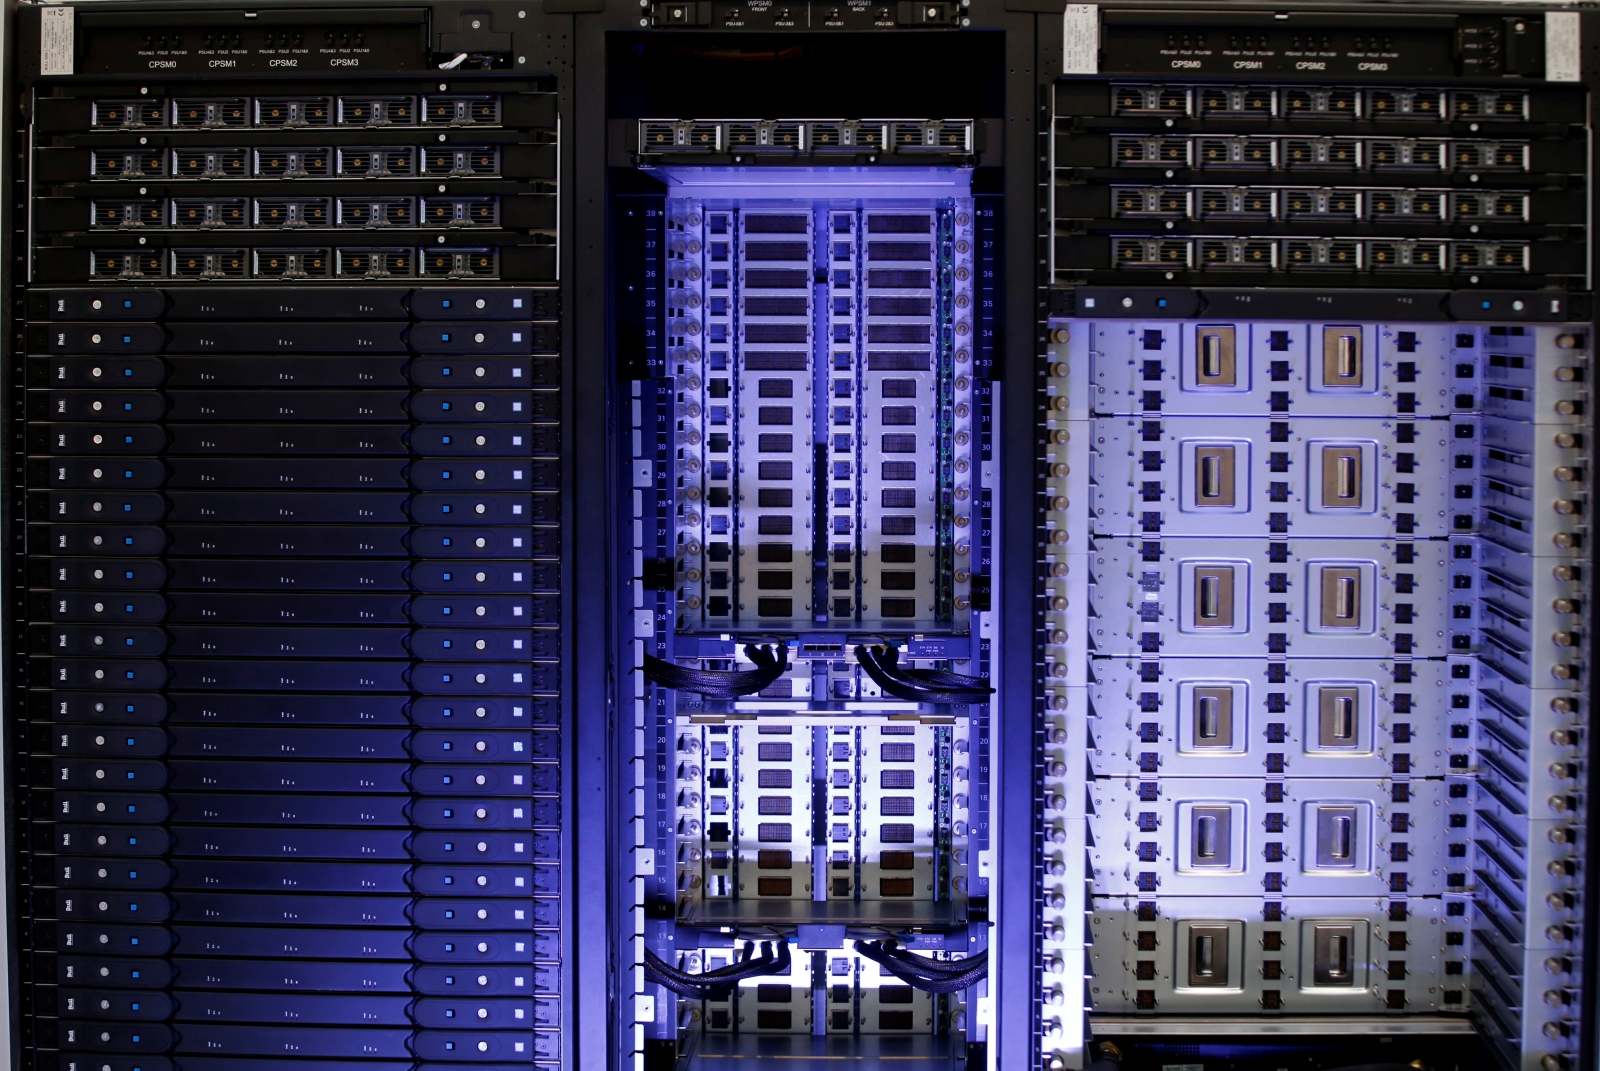 China's new supercomputer Tianhe-3